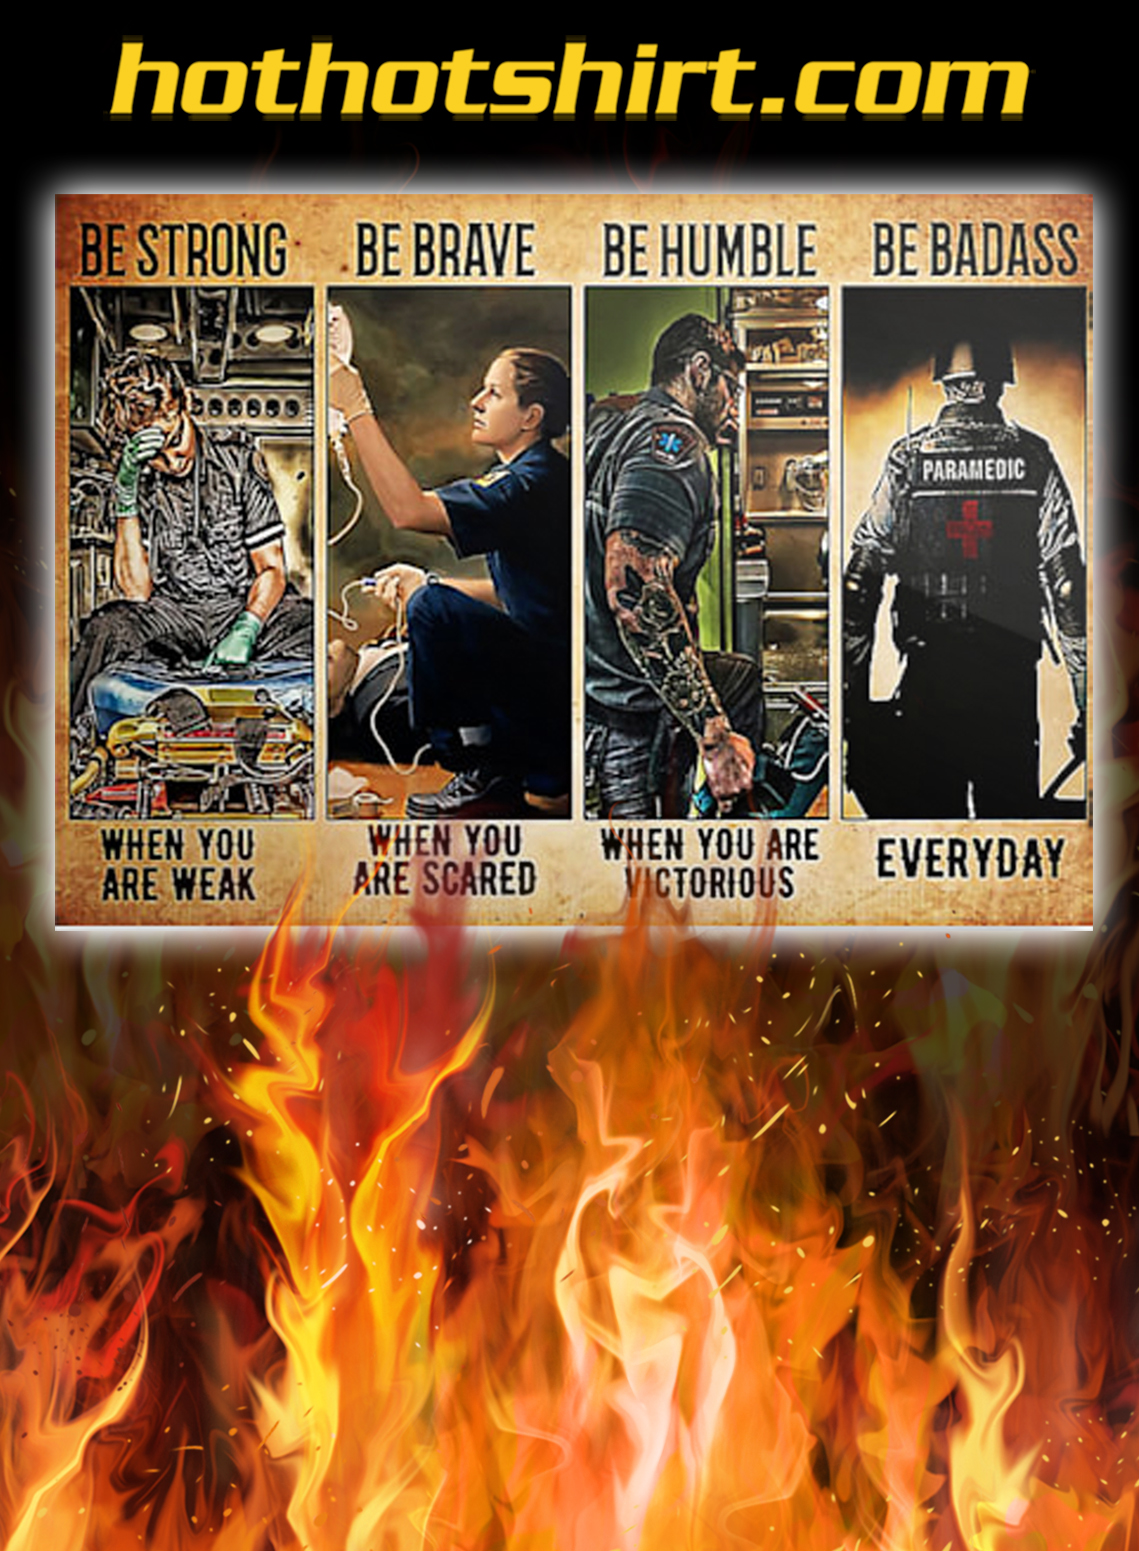 Rescue Paramedic be strong be brave be humble be badass poster - A3